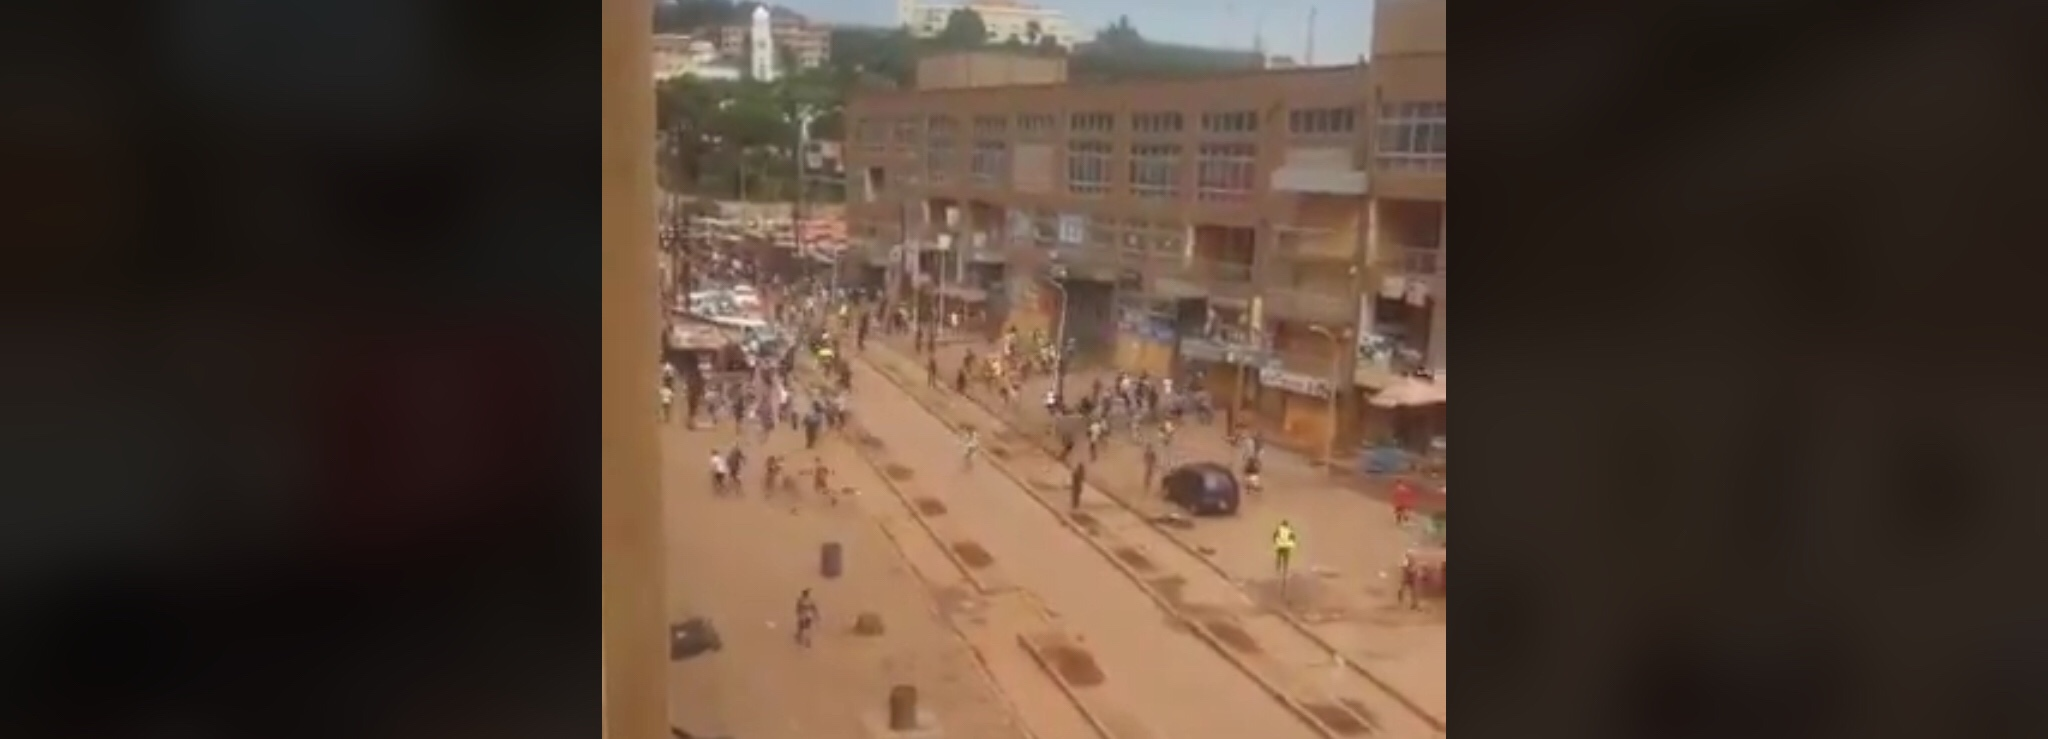 Uganda: lockdown clashes